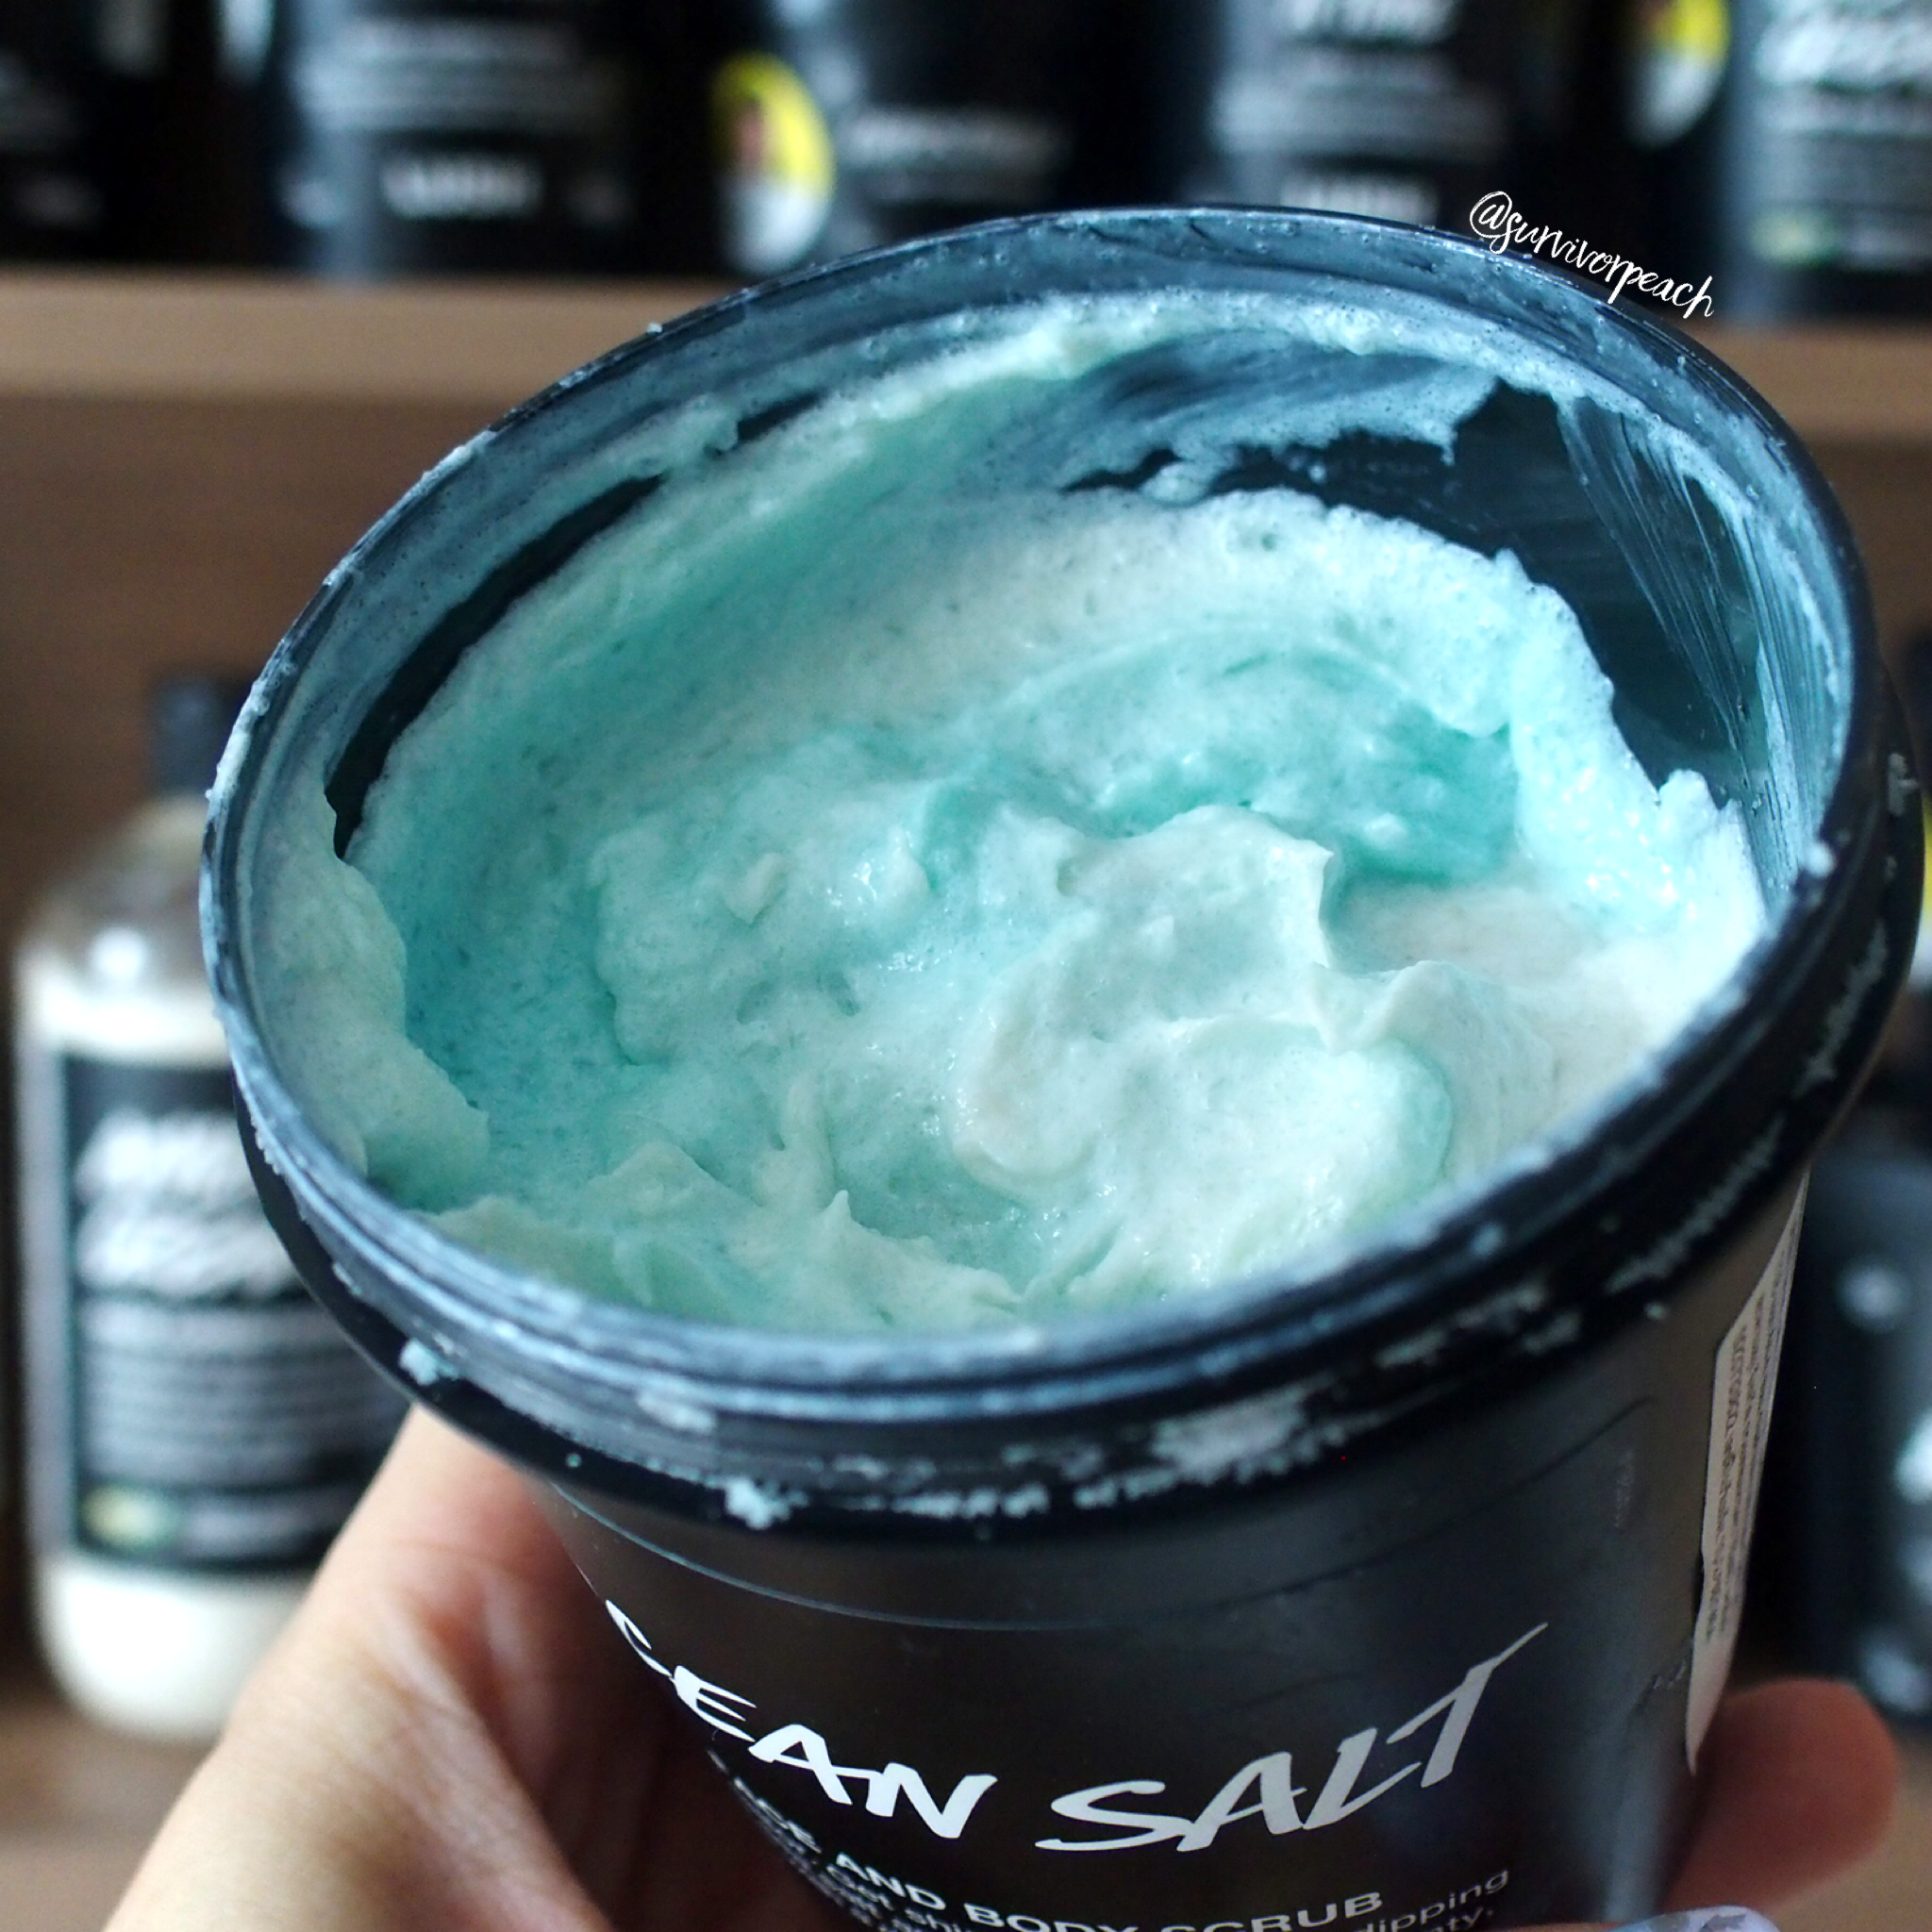 Lush Ocean Salt Face and Body Scrub